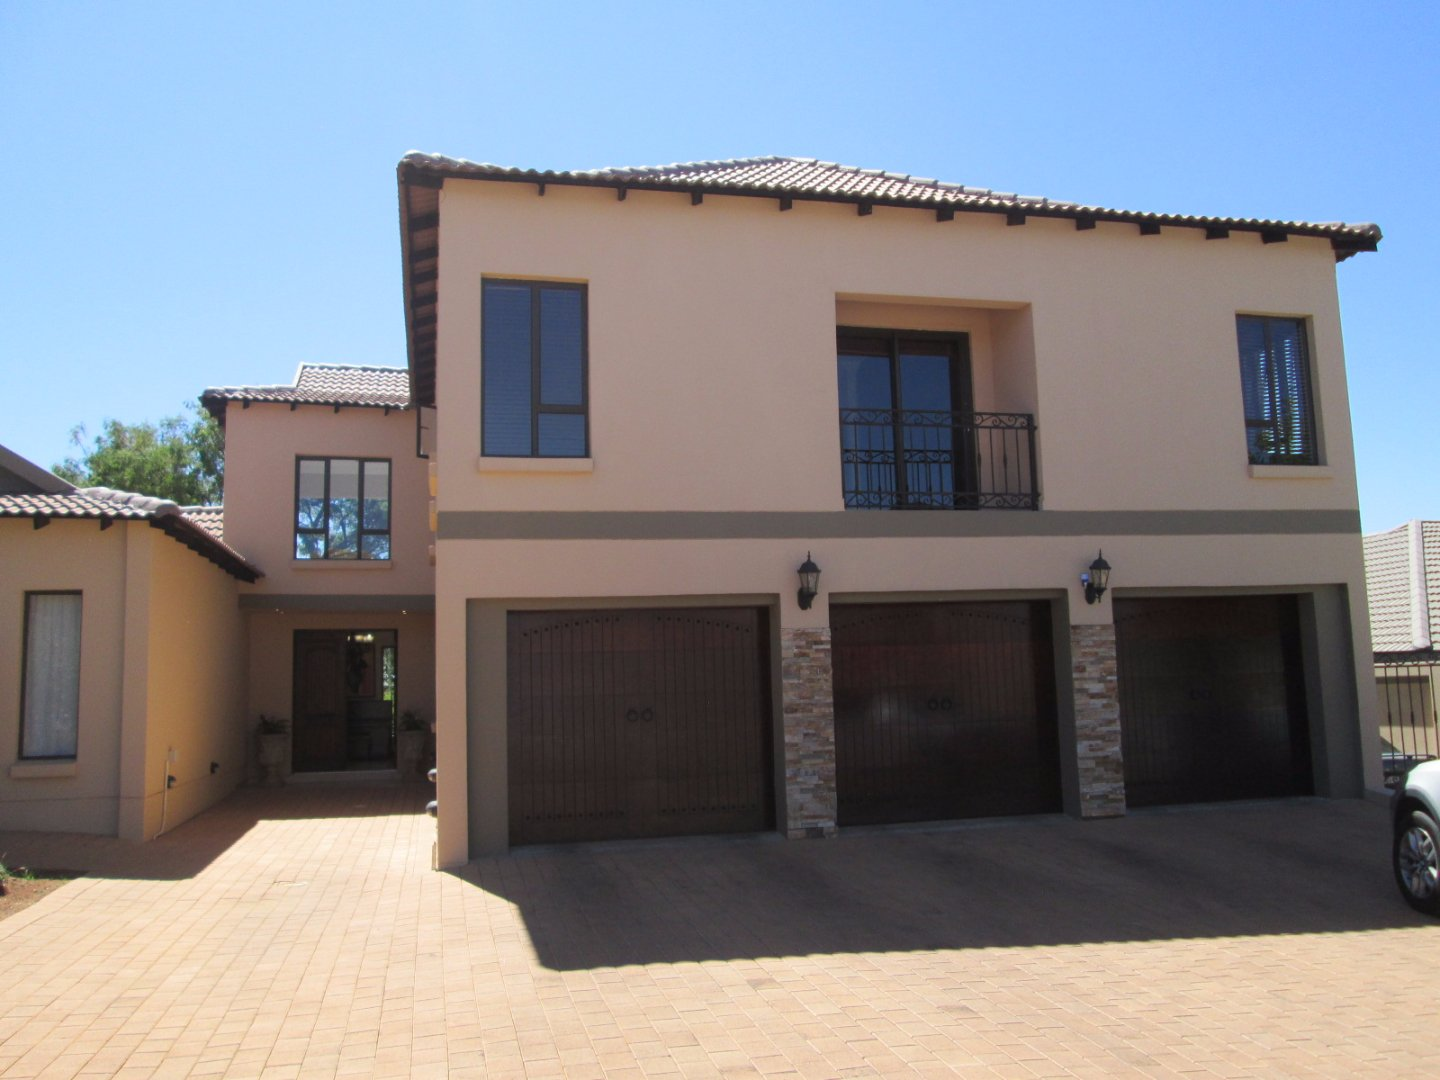 Alberton, Meyersdal Property  | Houses For Sale Meyersdal, Meyersdal, House 4 bedrooms property for sale Price:6,500,000